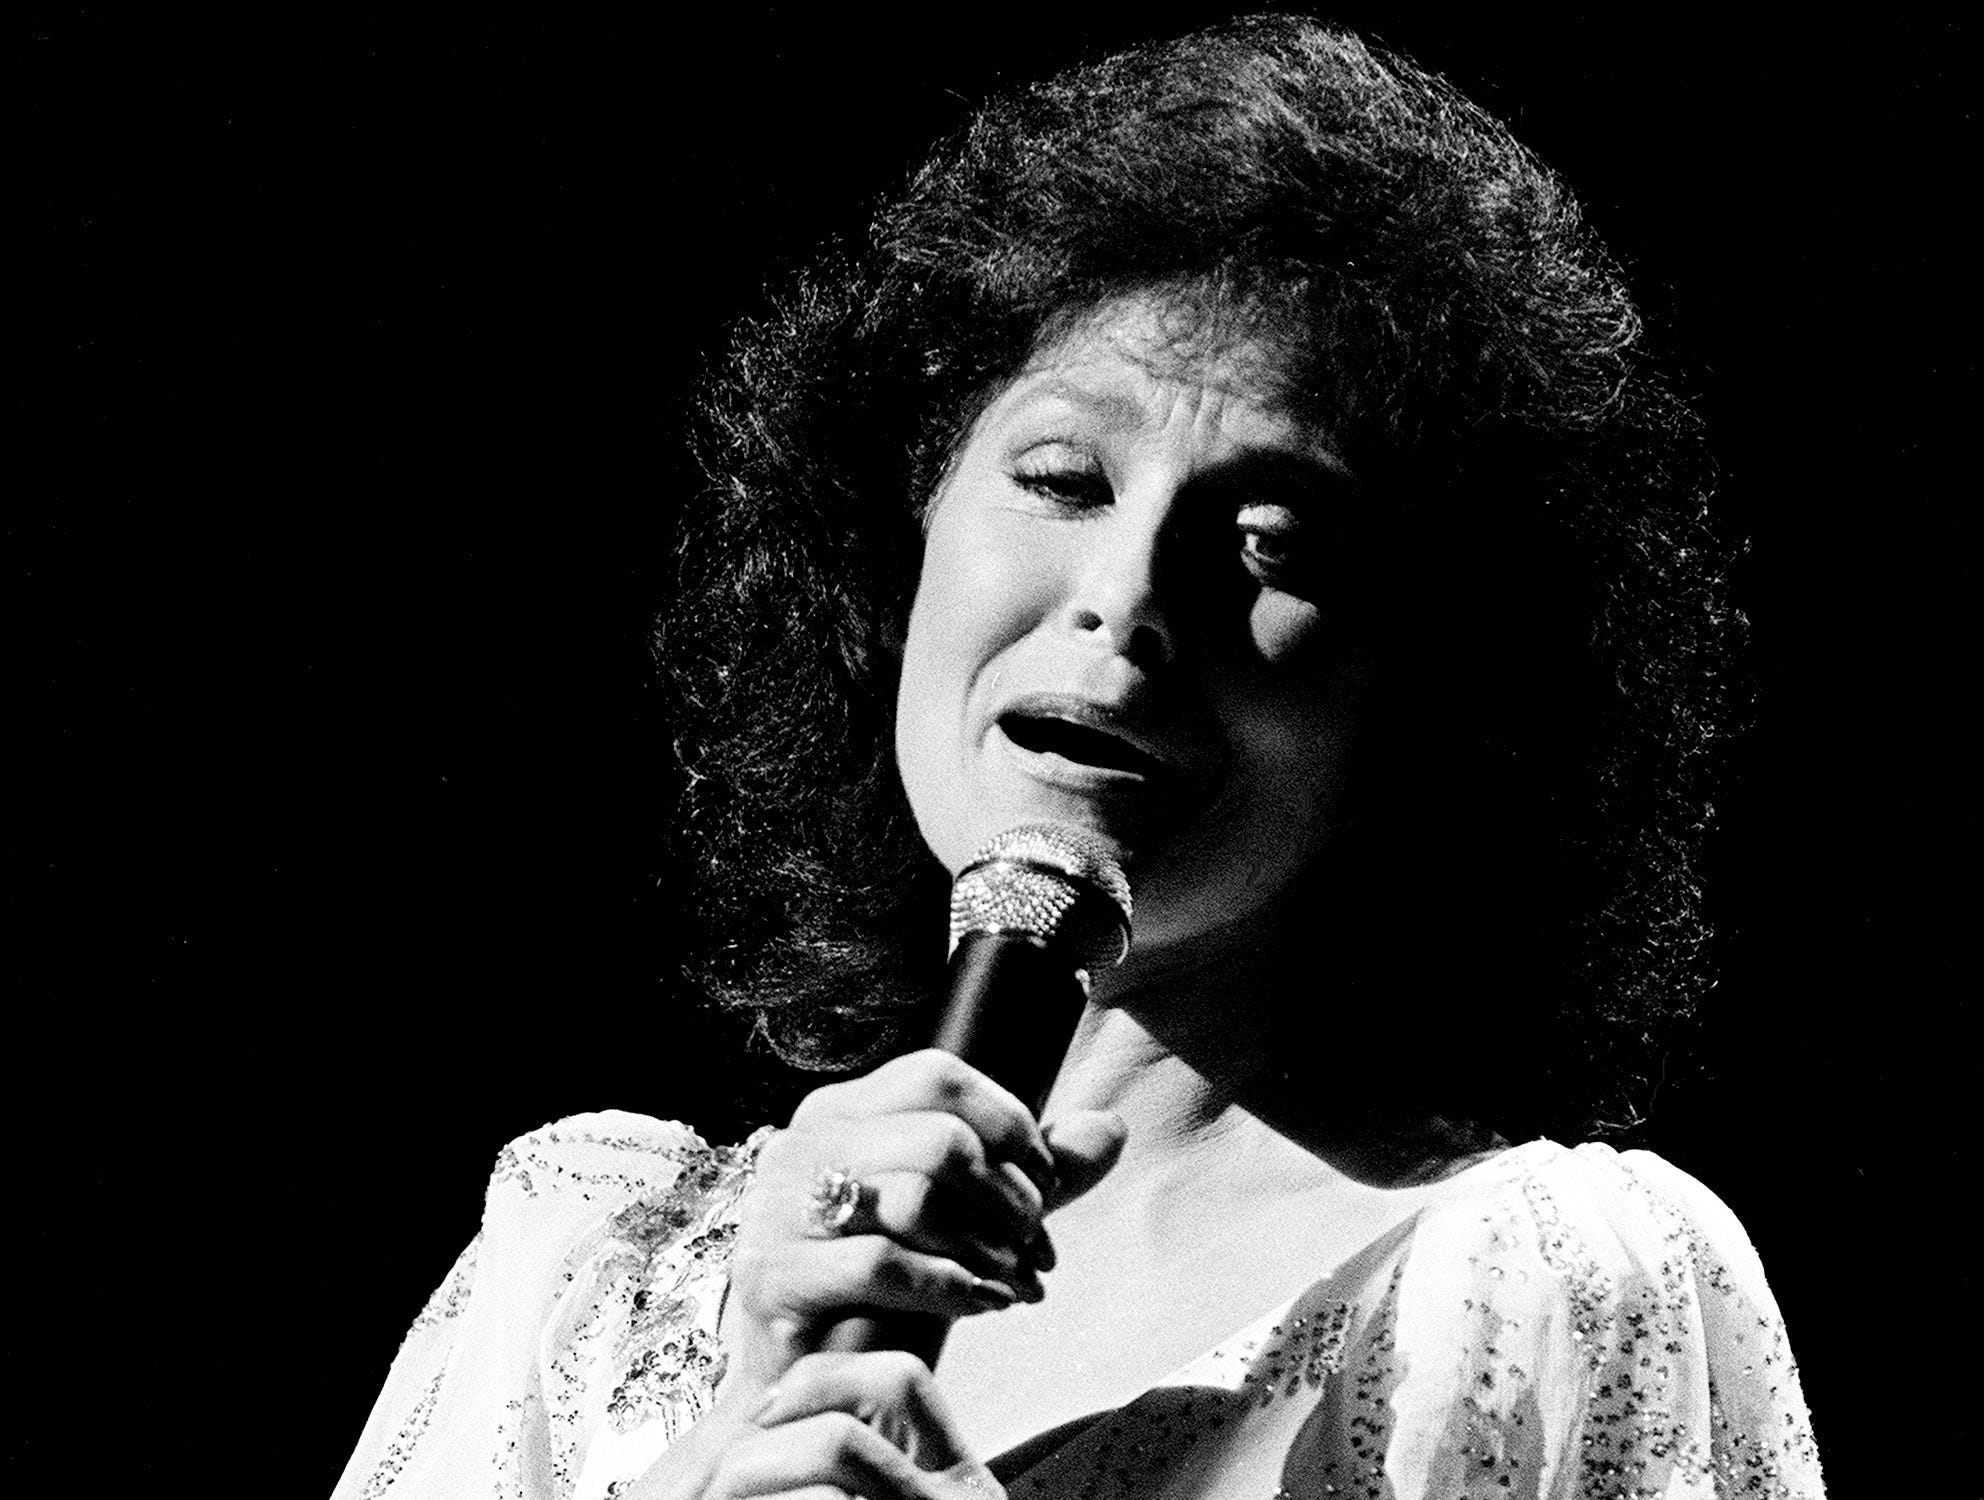 """Loretta Lynn sings """"Walkin' the Floor Over You"""" in a tribute to the late Hall of Famer Ernest Tubb during the CMA Awards show at the Grand Ole Opry House Oct. 8, 1984."""